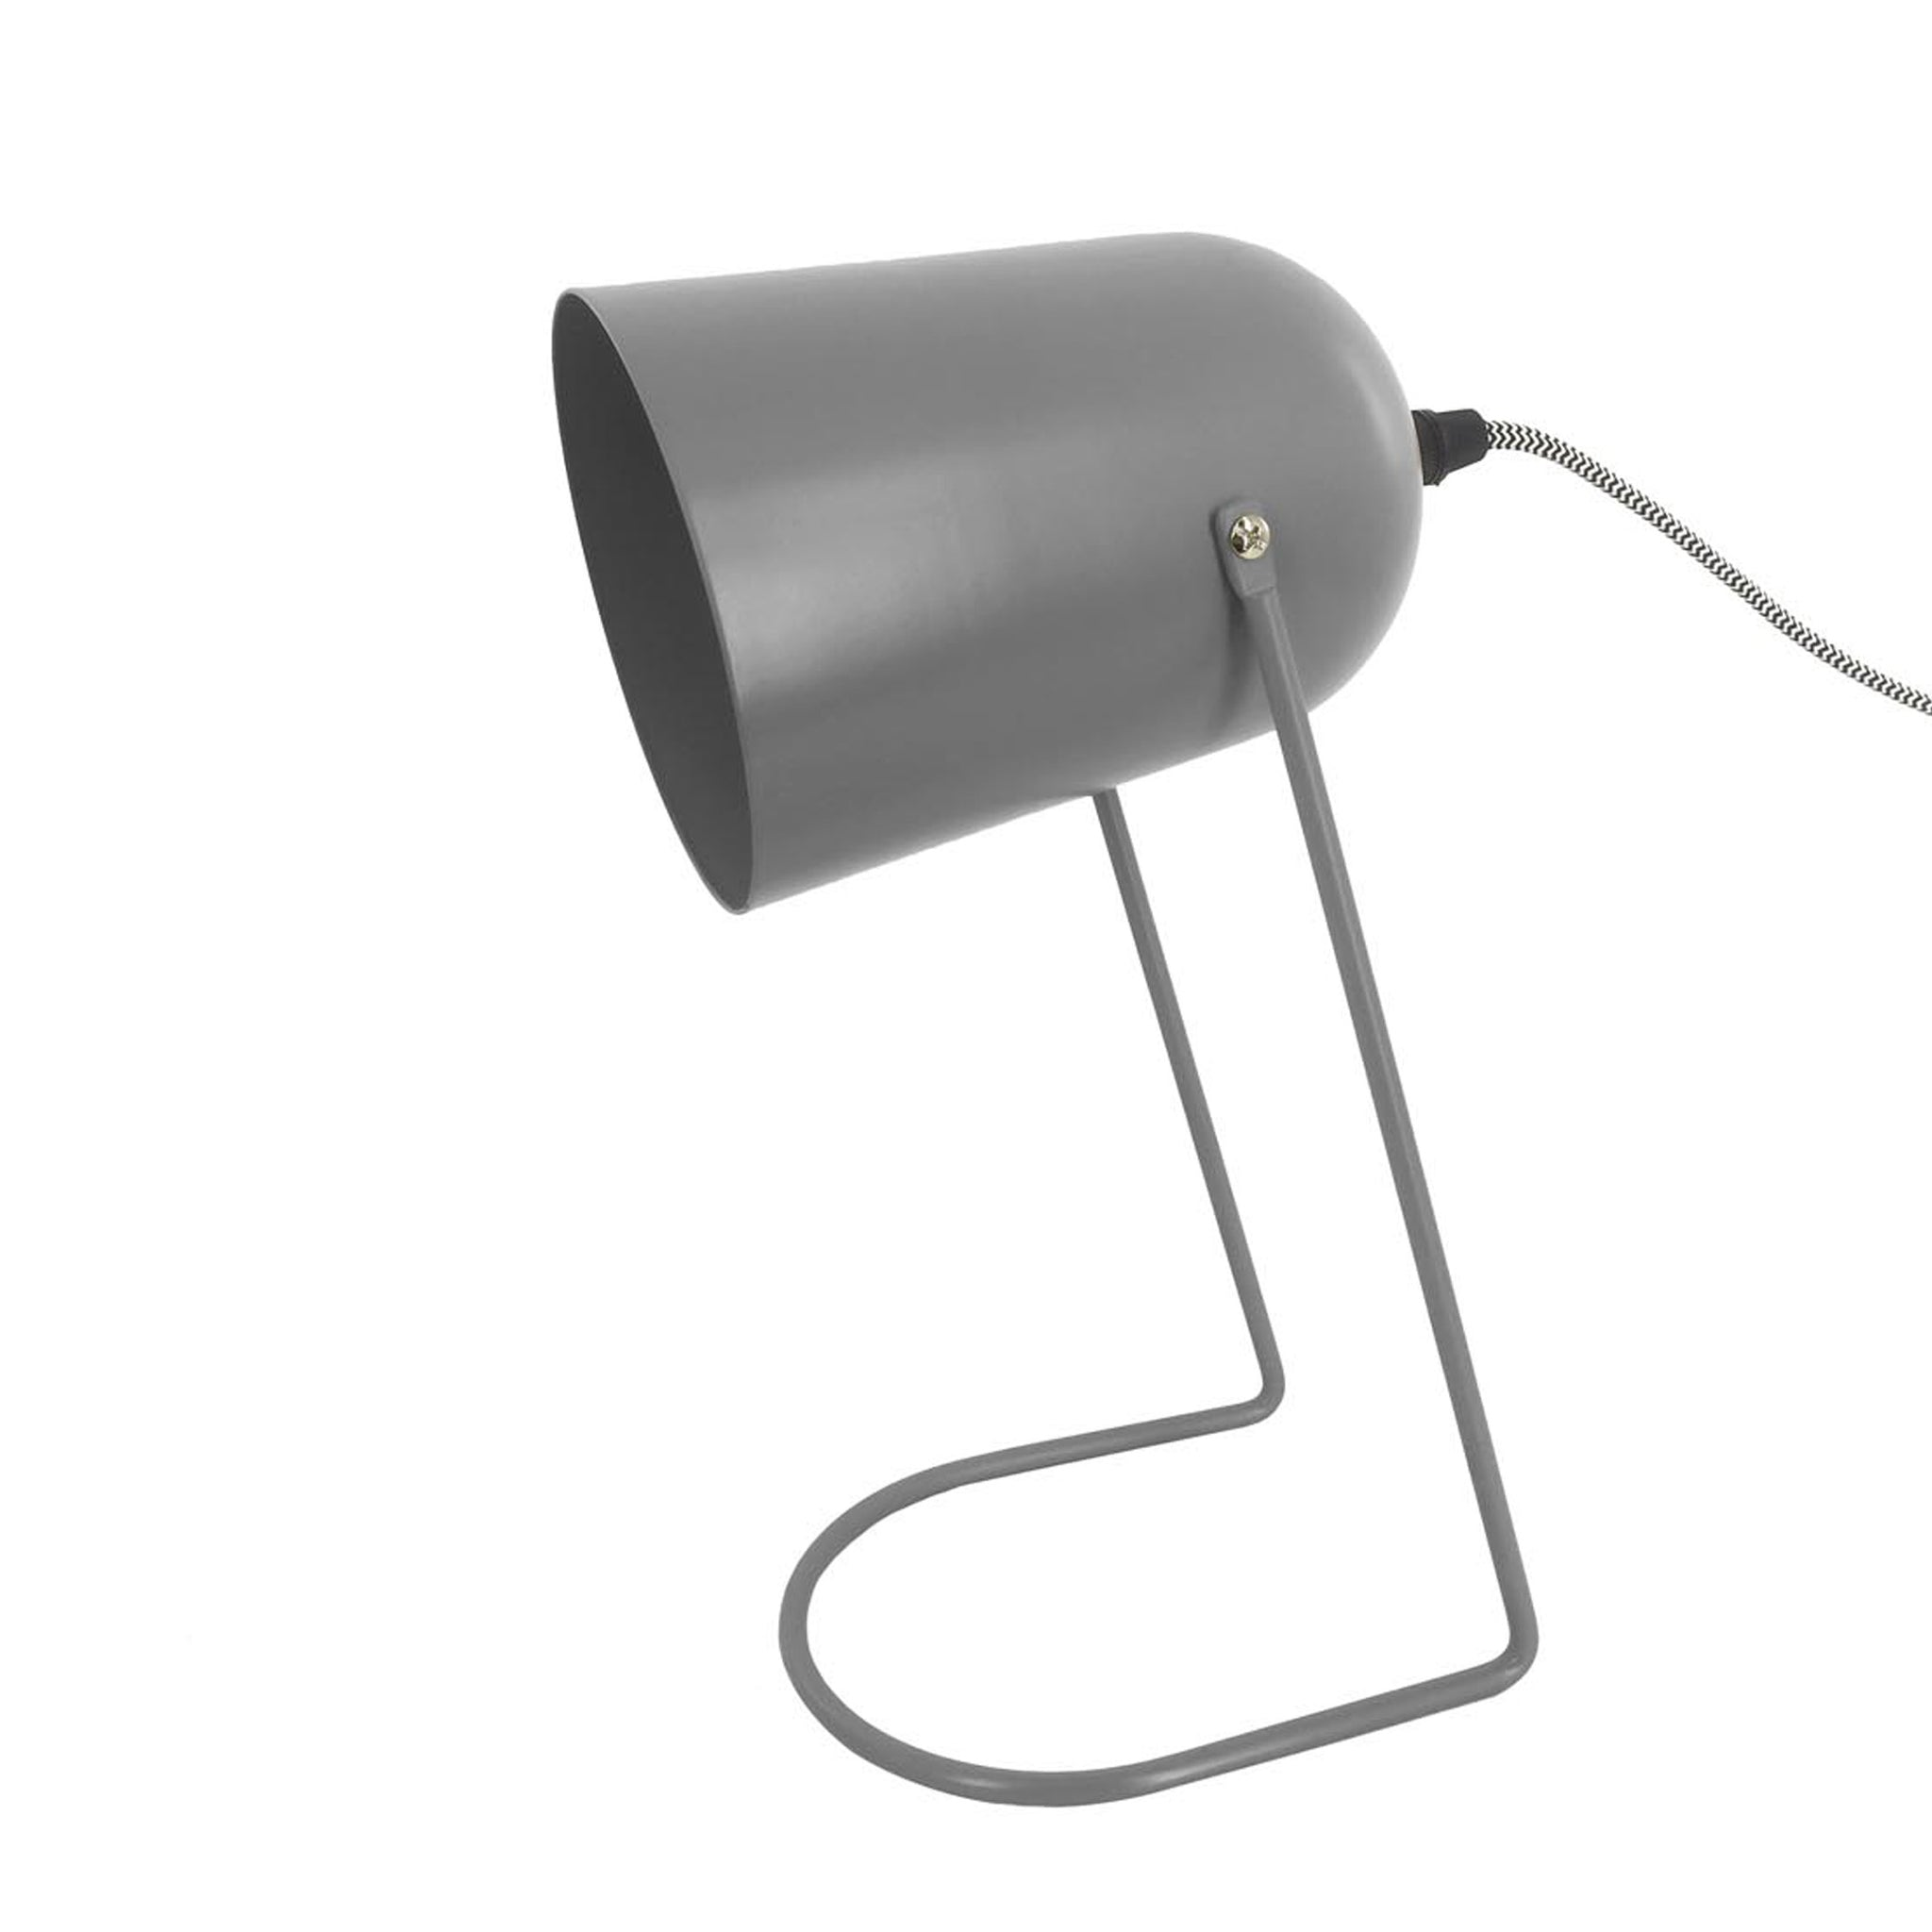 'Enchant' Table Lamp - Mouse Grey